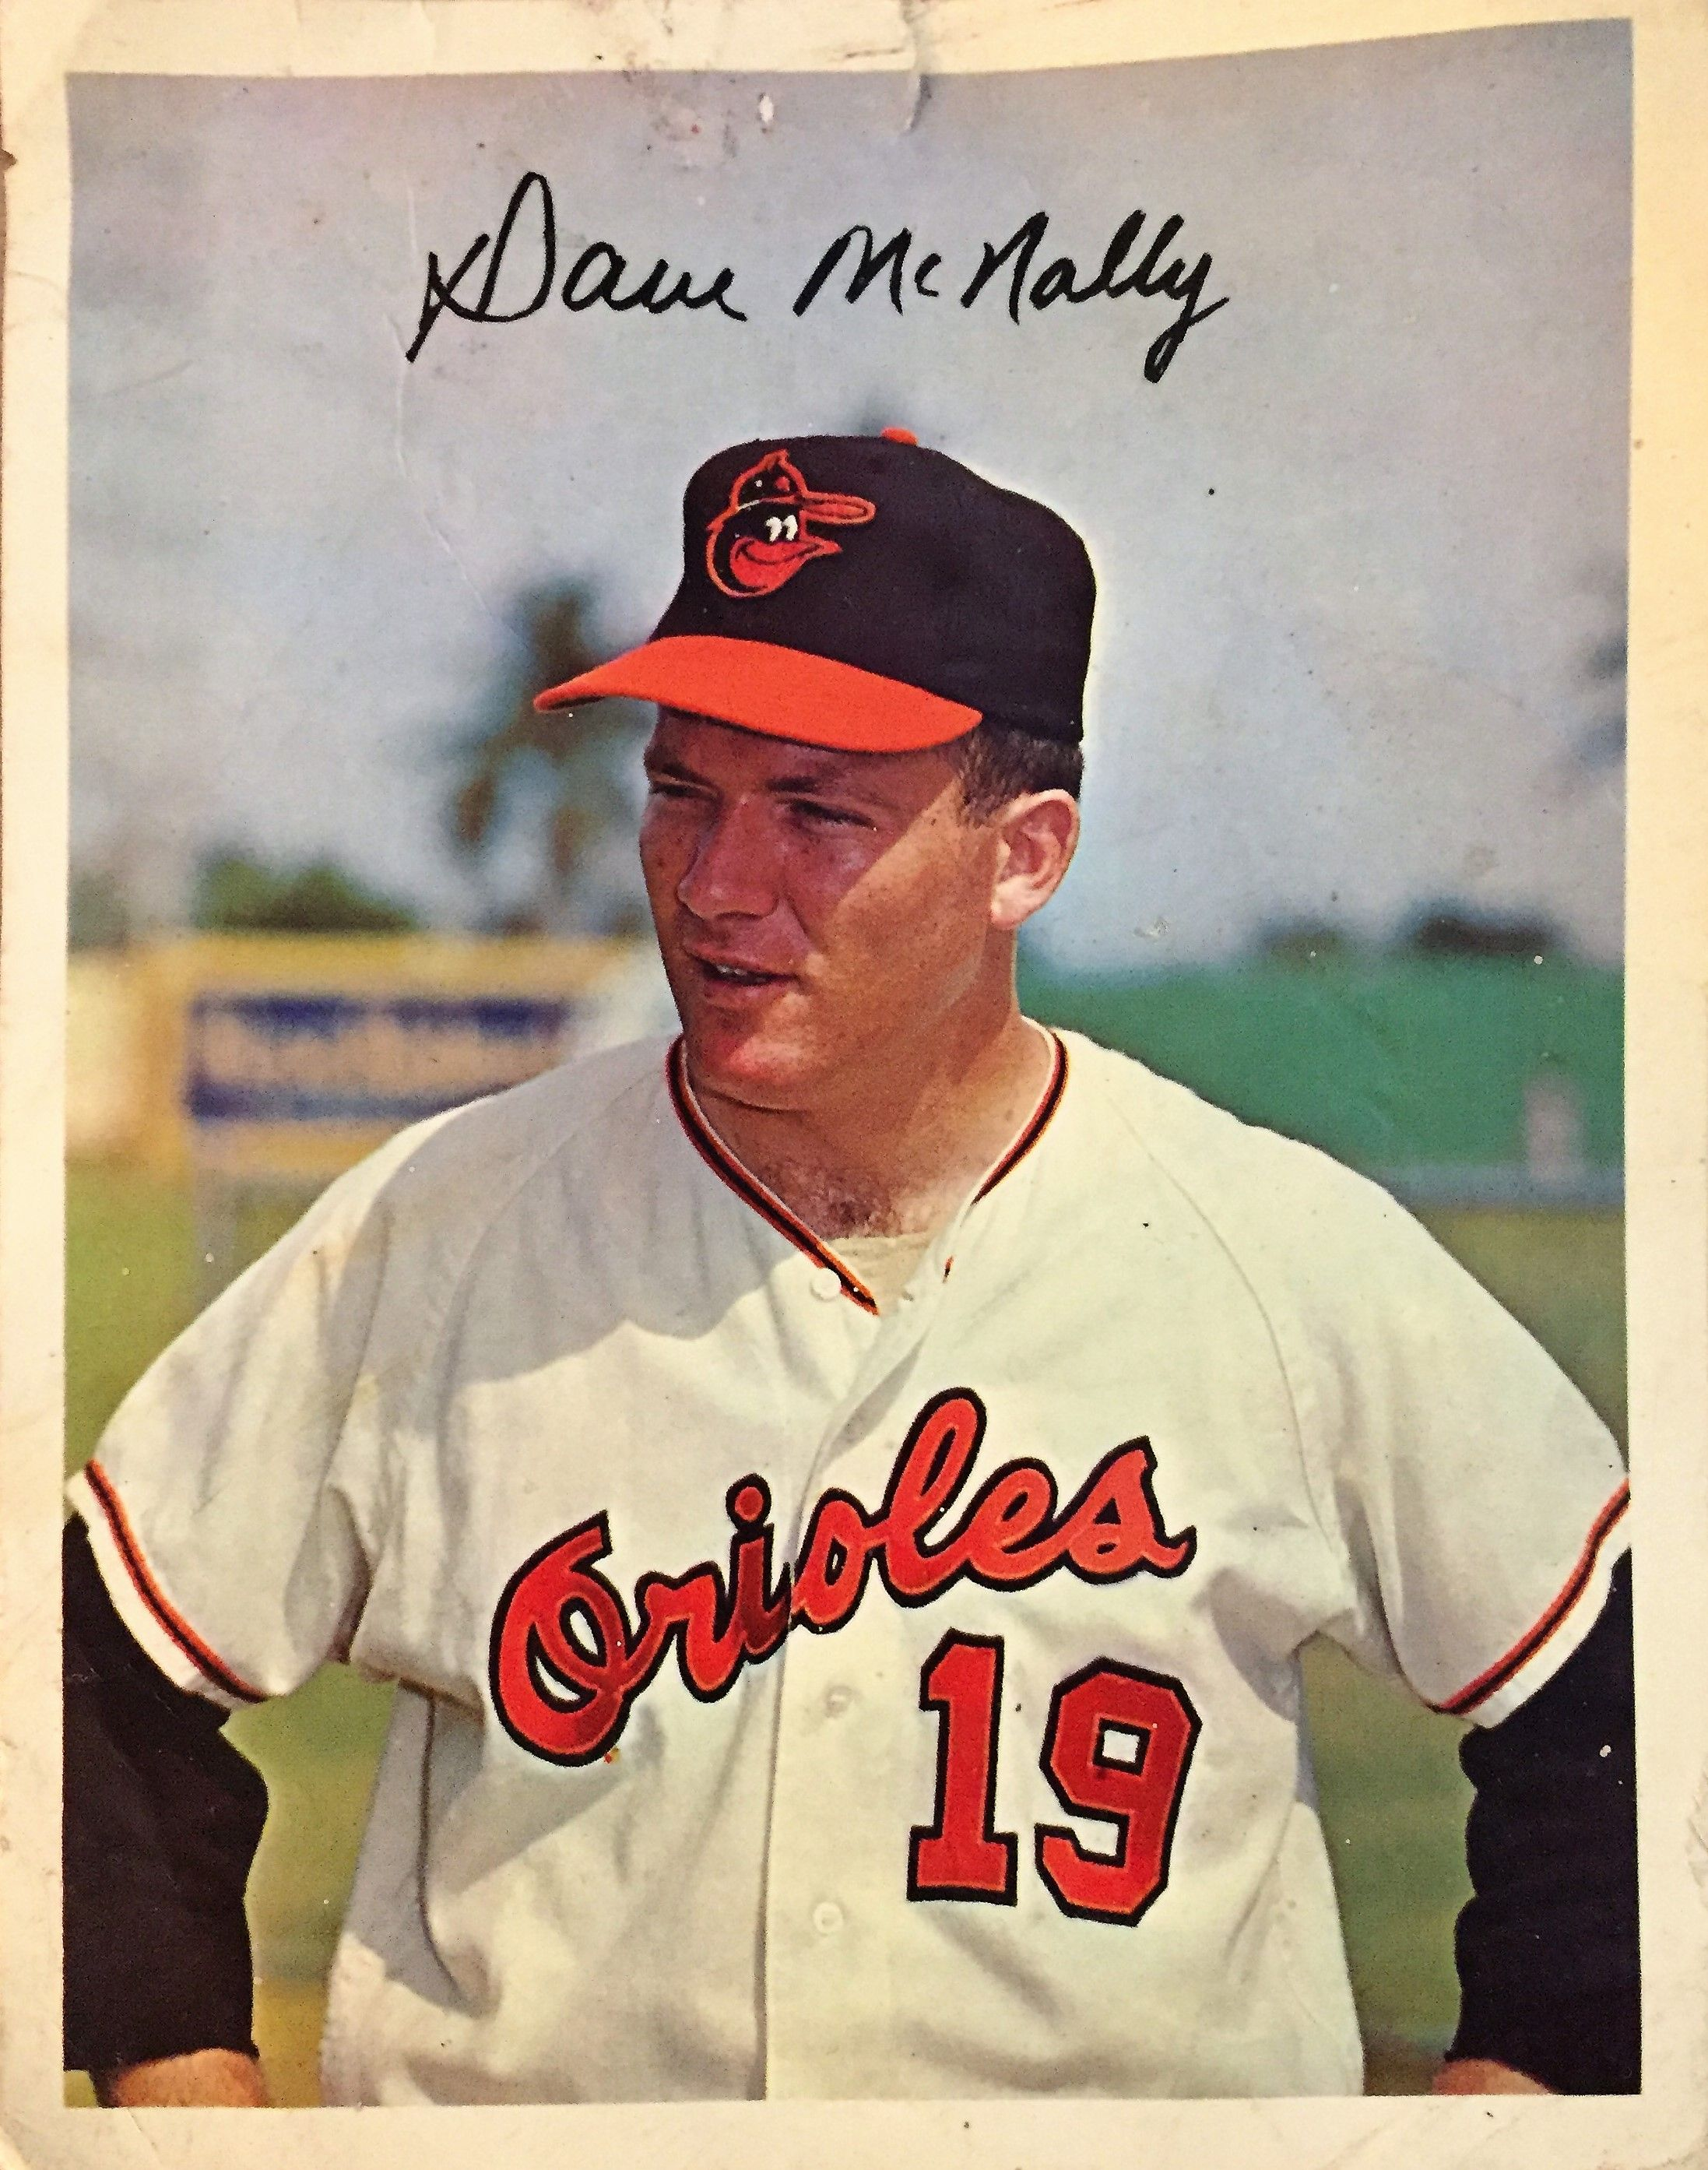 Pitcher Dave Mcnally In Late 1960s Baltimore Orioles Baseball Players Orioles